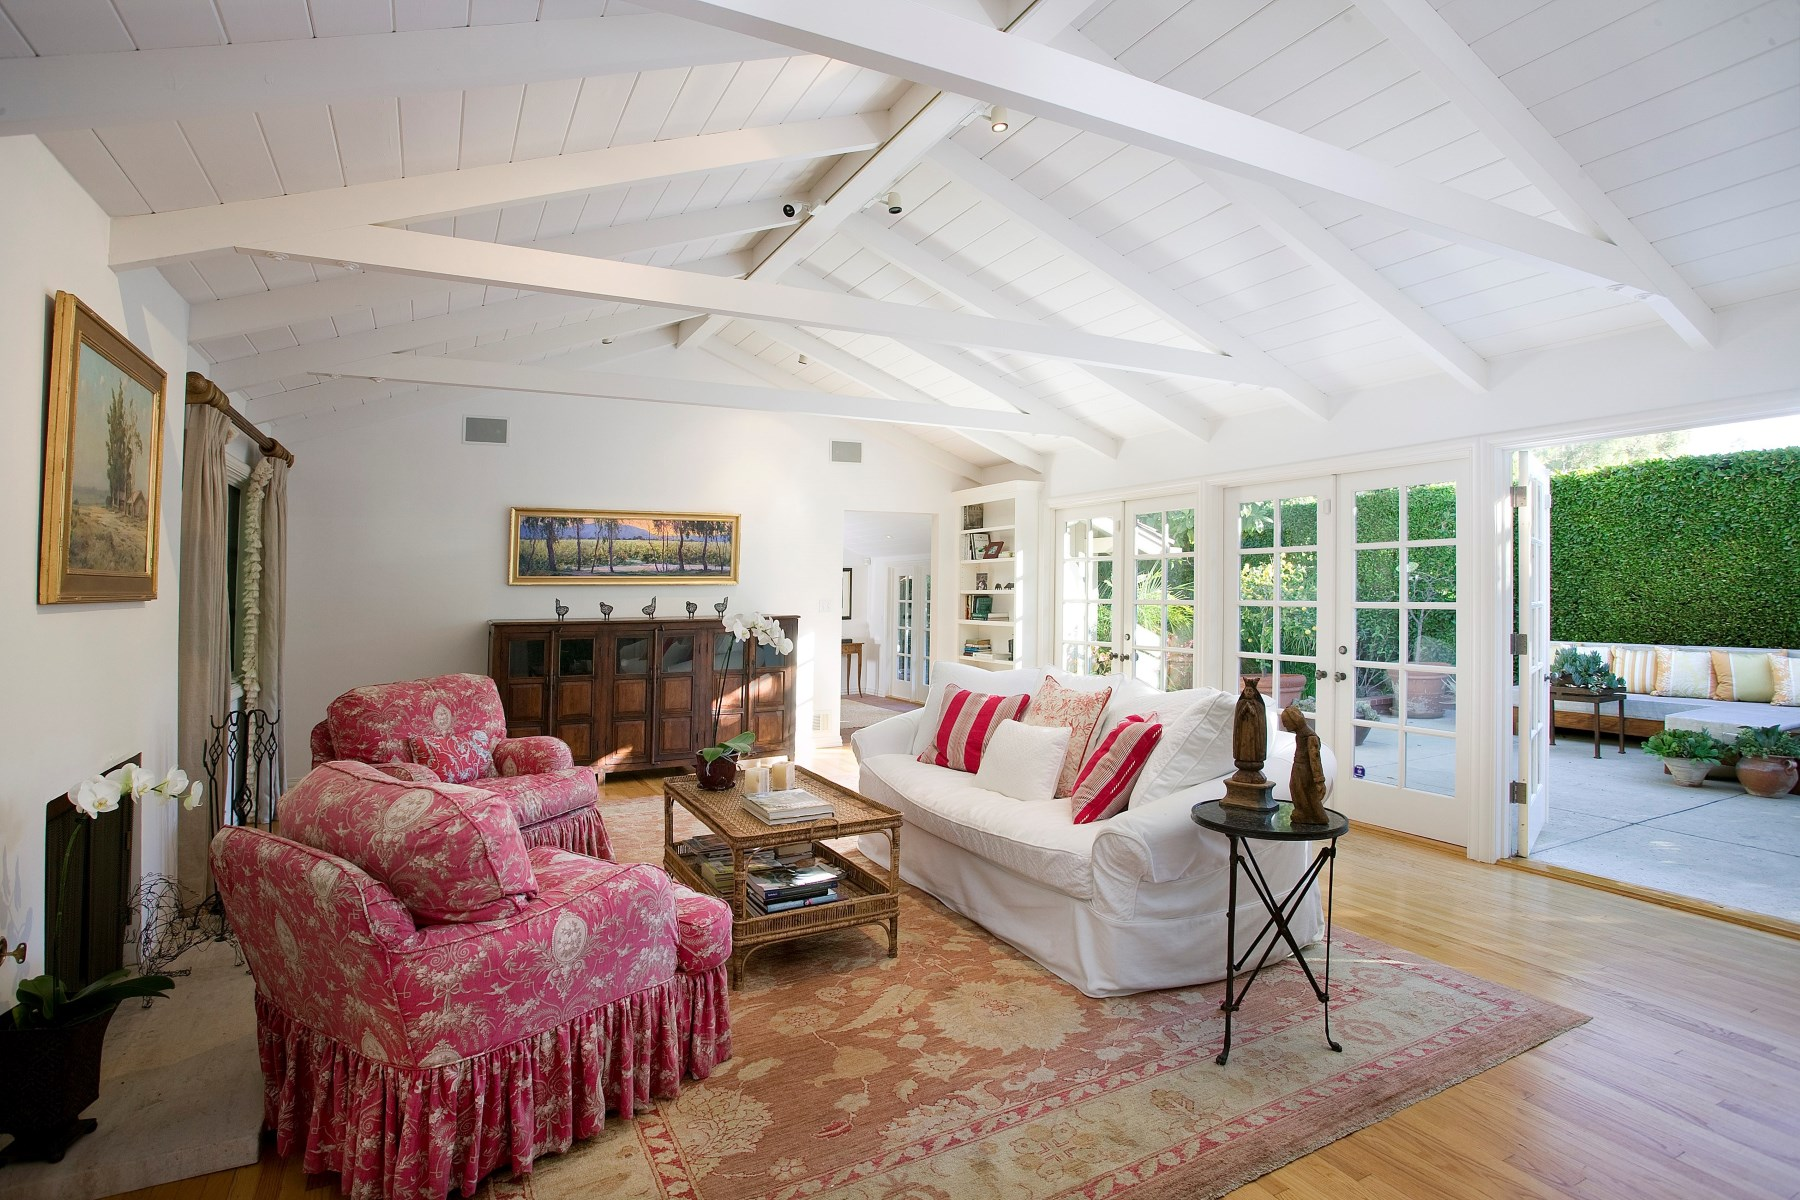 Single Family Home for Sale at Heart of Montecito 1153 High Road Montecito - Lower Village, Santa Barbara, California, 93108 United States